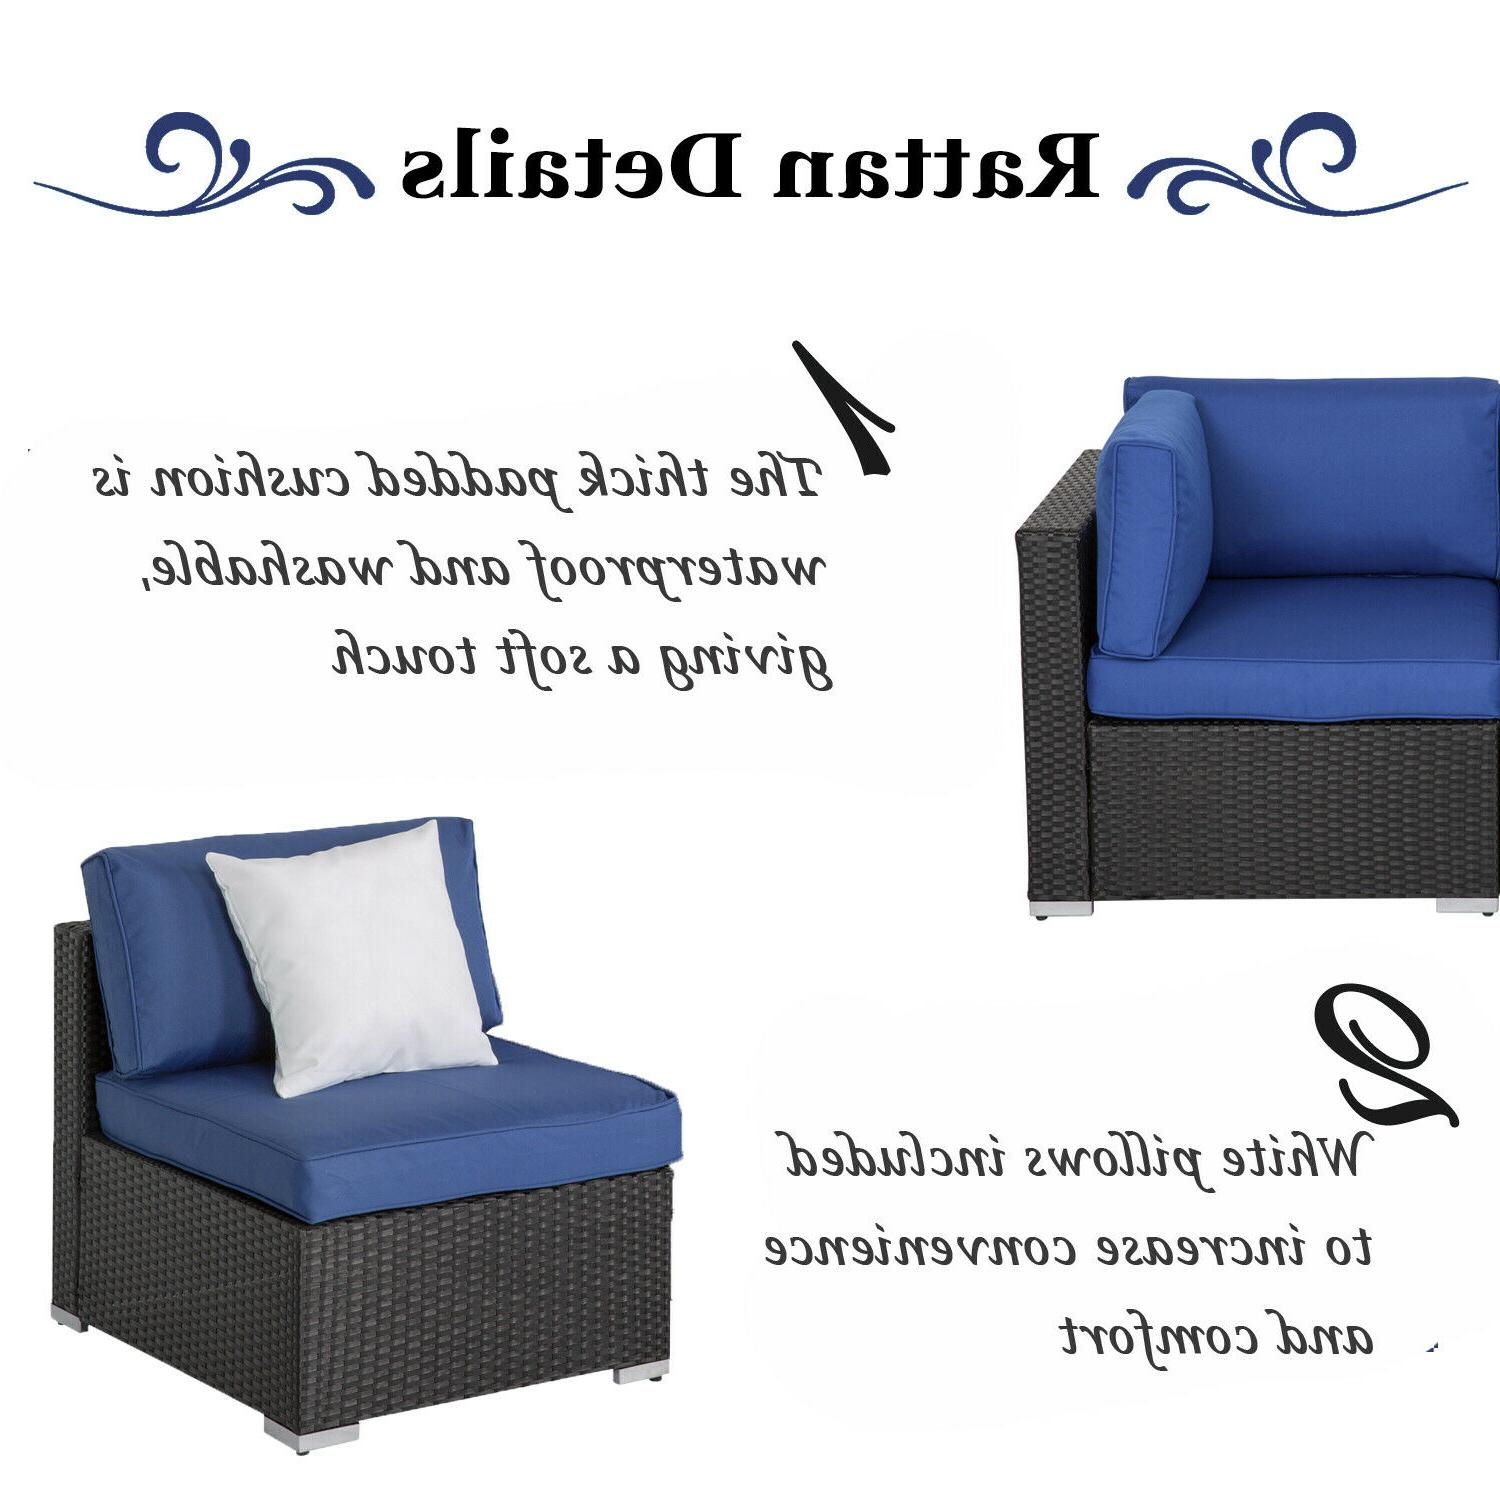 7 Outdoor Furniture Patio Rattan Wicker Sectional Blue